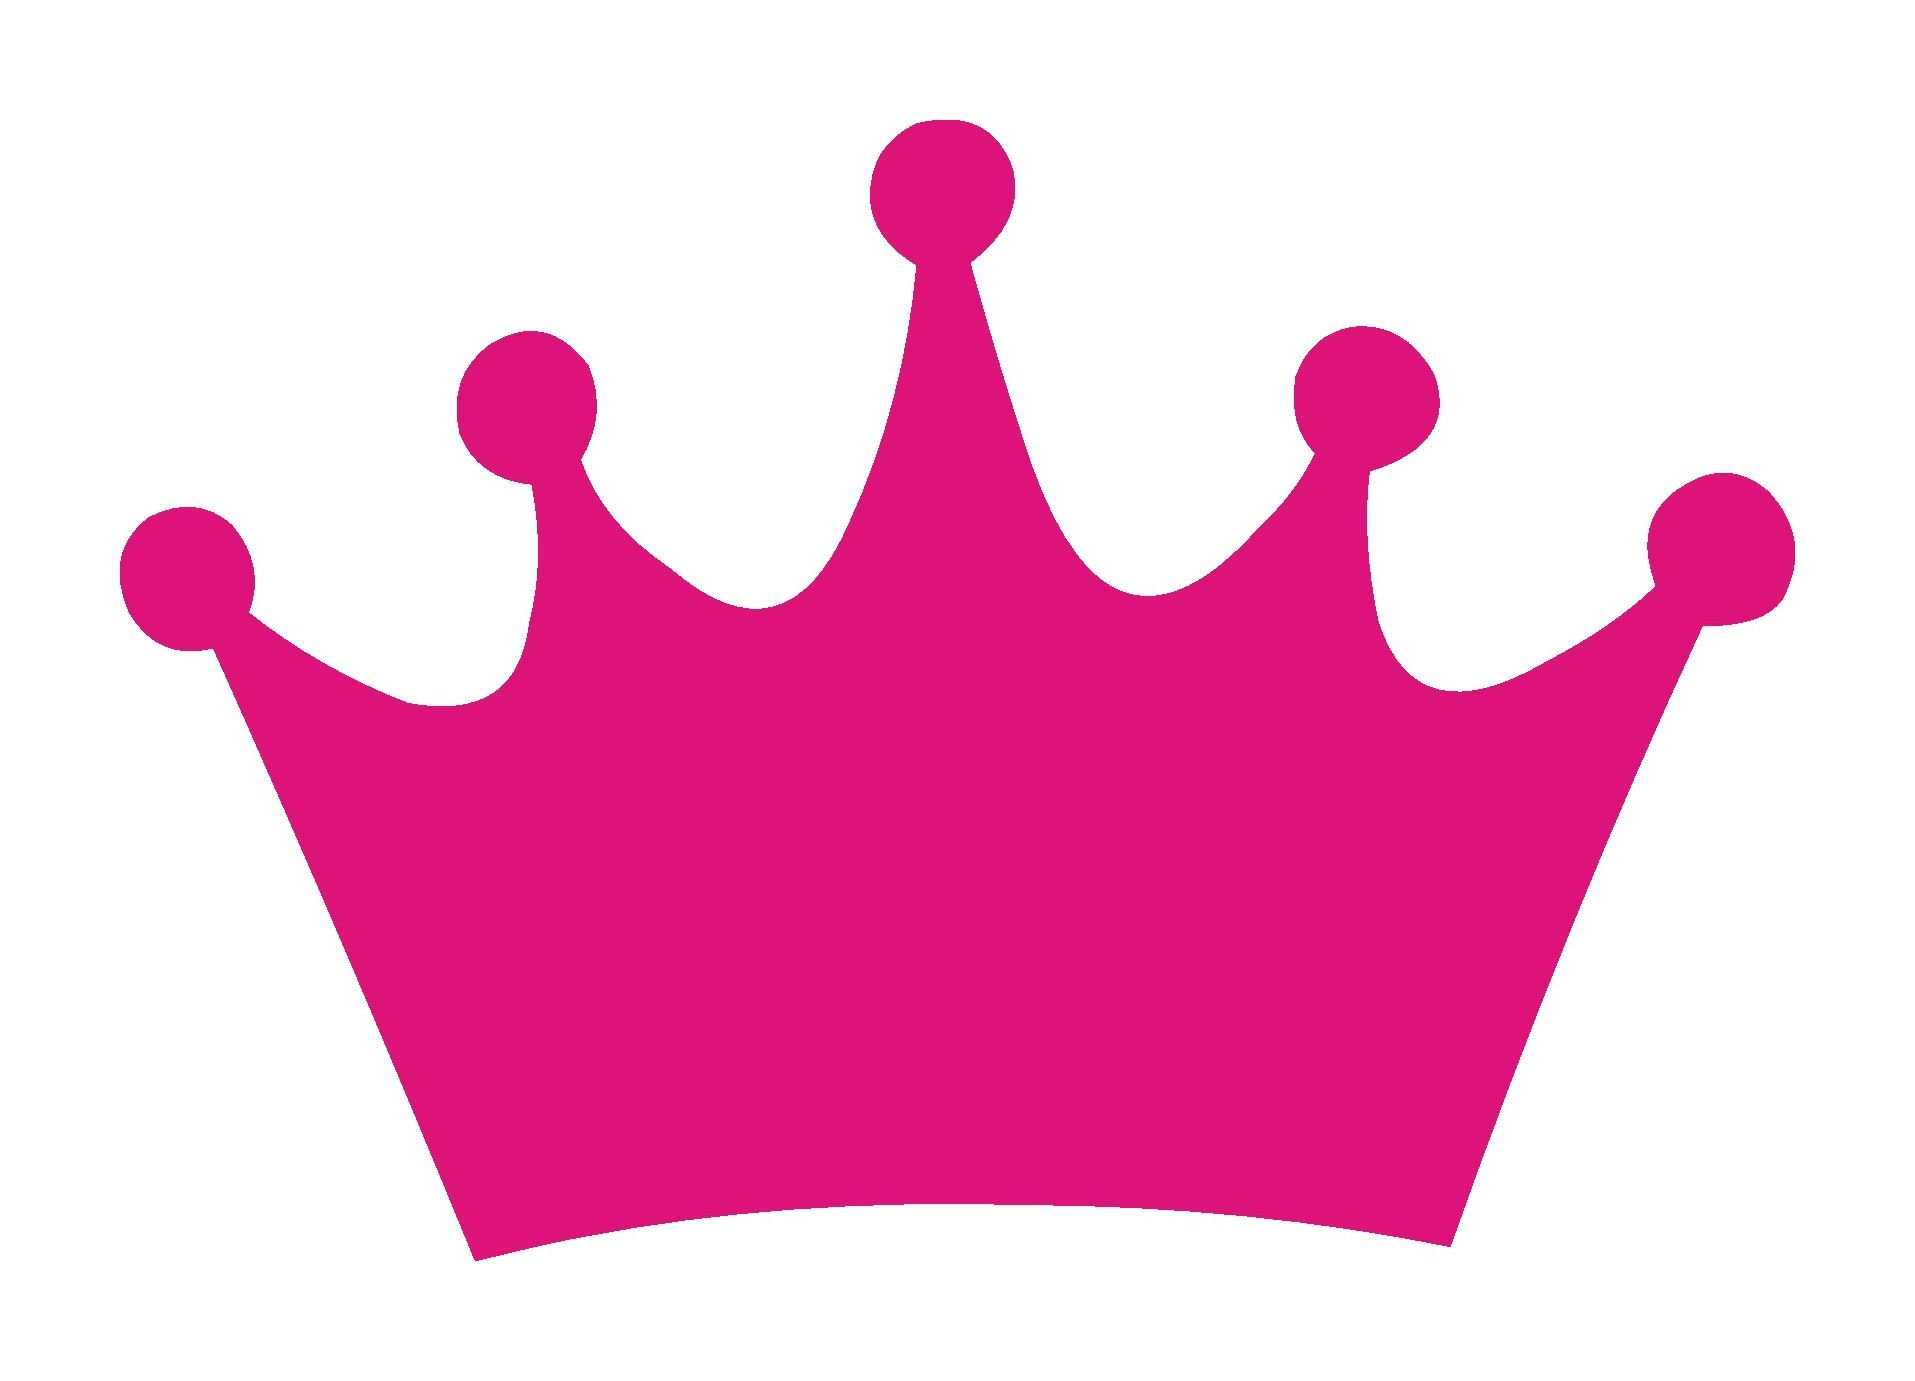 this is best princess crown clipart 15777 princess crown png rh pinterest com Princess Crown Clip Art Cartoon Queen Crown